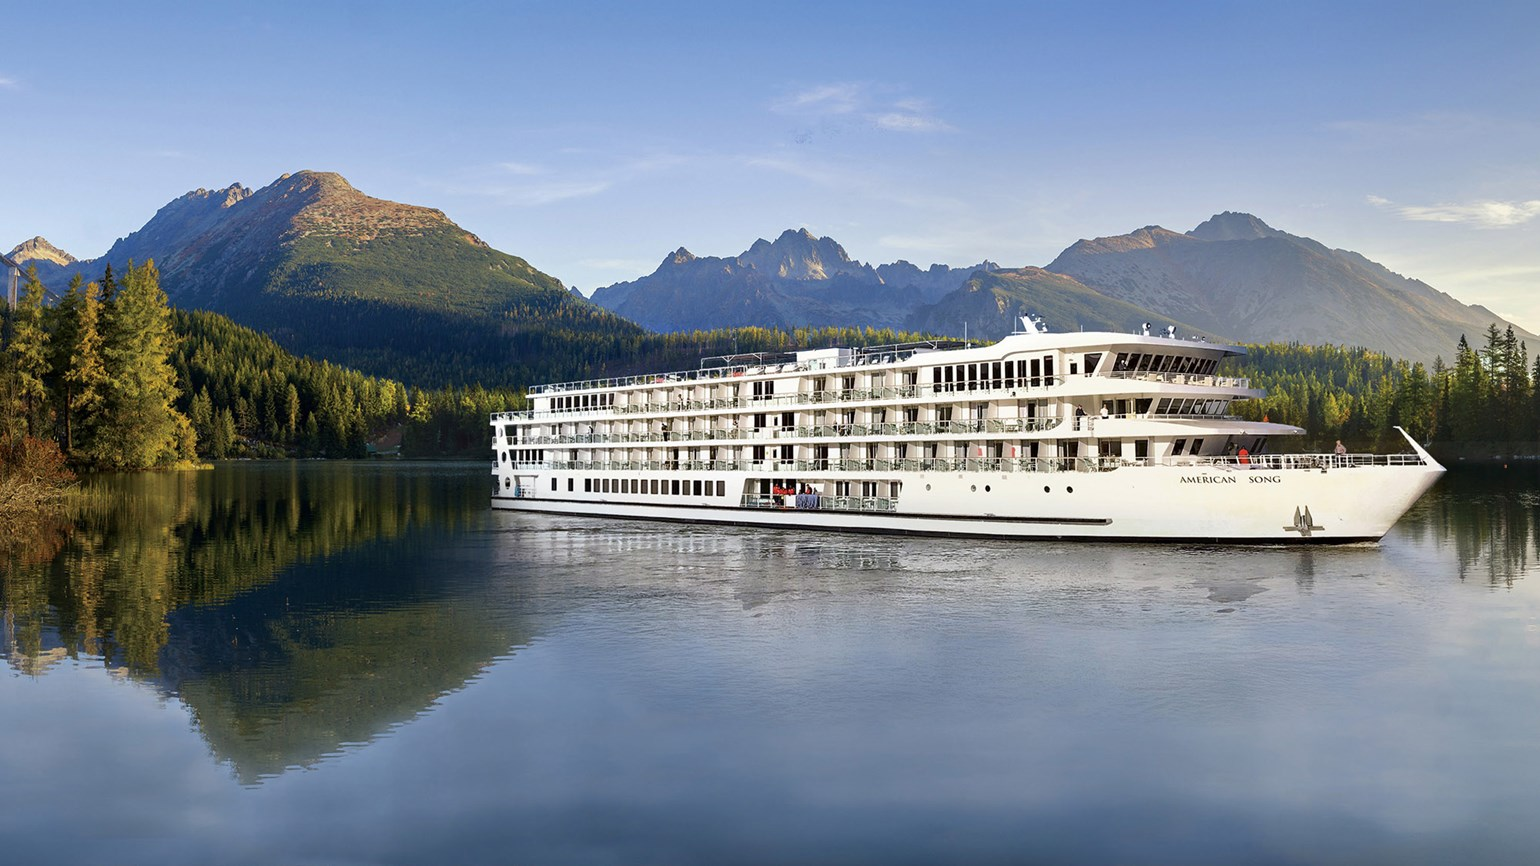 River cruises have returned to the Pacific Northwest